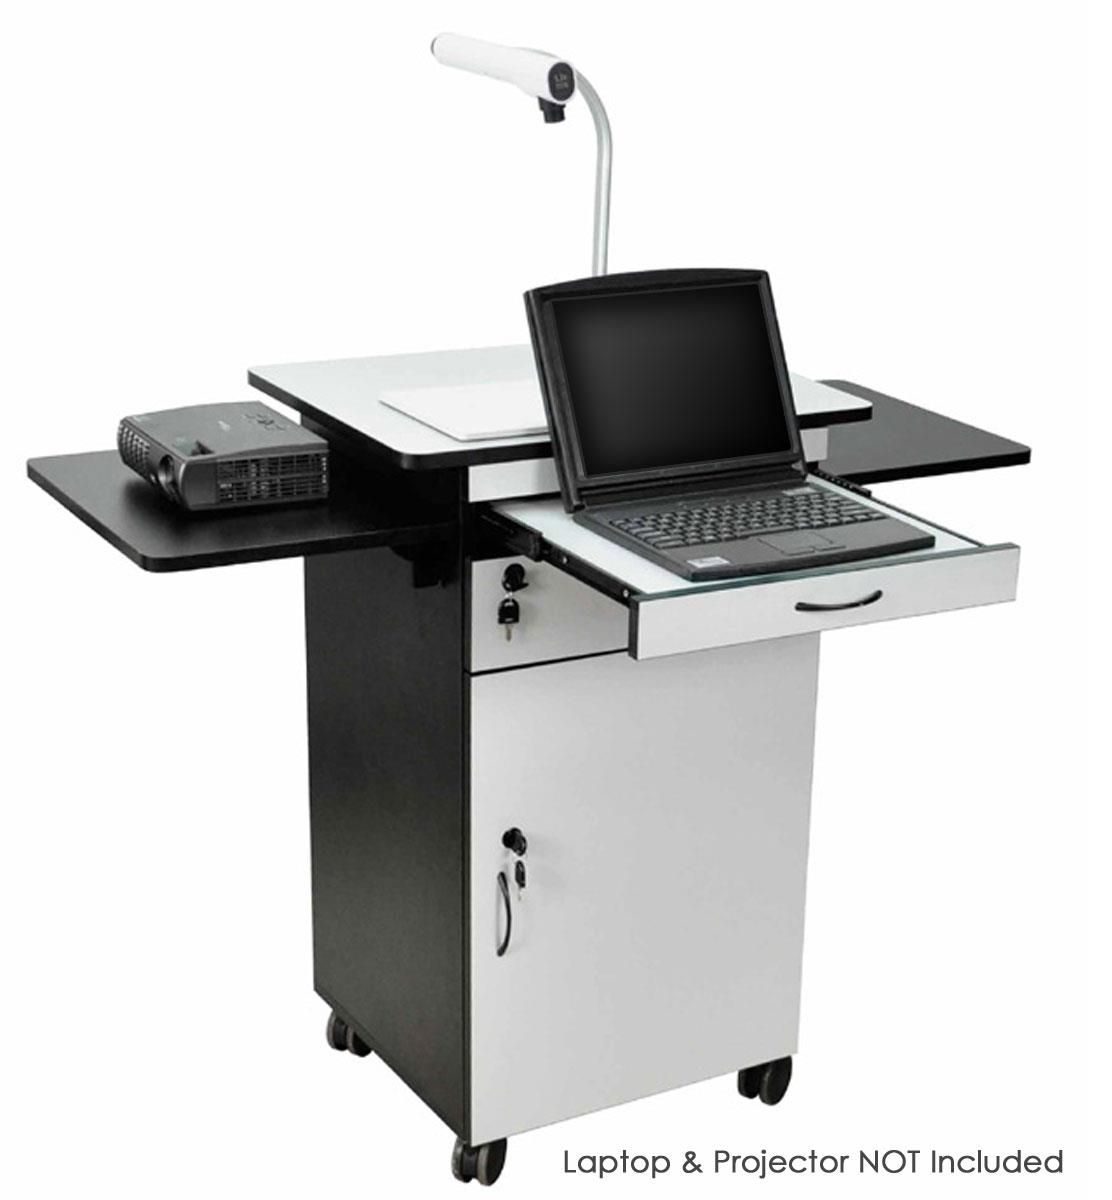 Media Cart With Locking Cabinet Pull Out Keyboard Tray Locking Wheels Black Gray In 2020 Computer Workstation Desk Lockable Storage Workstation